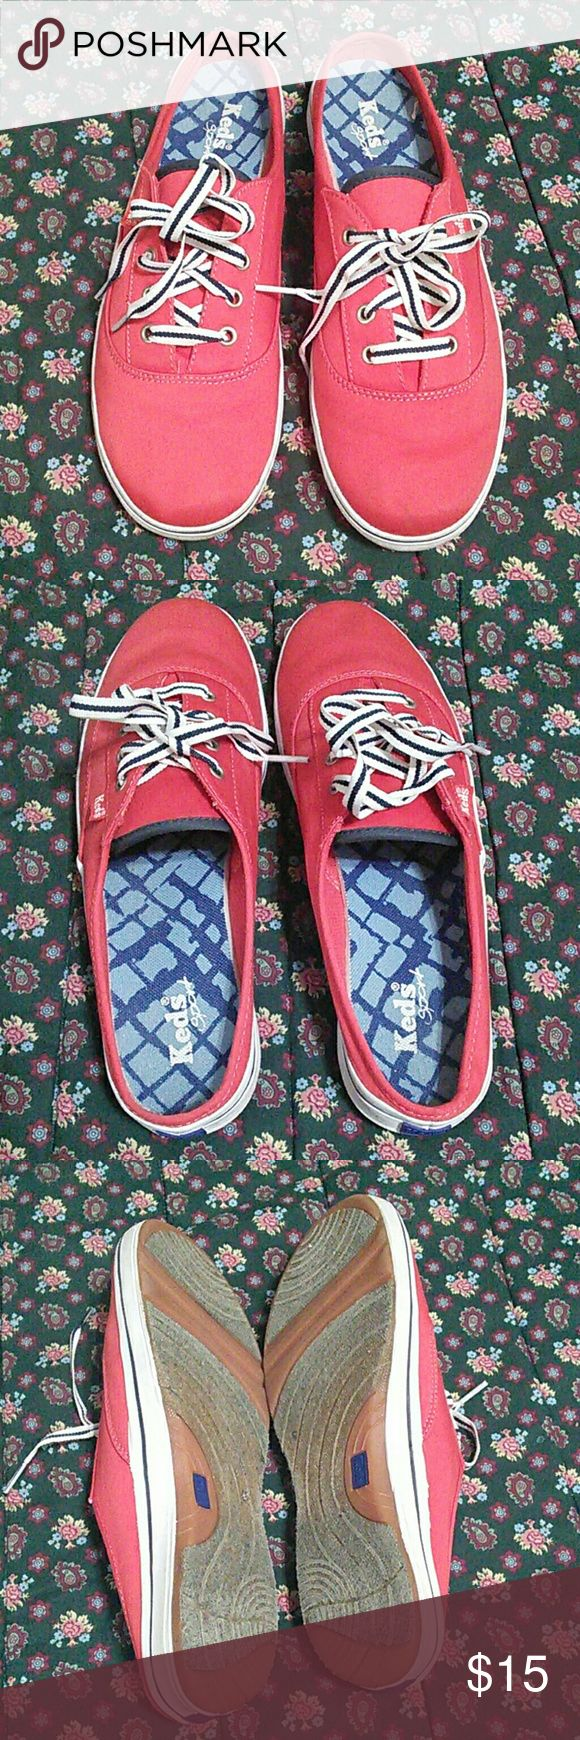 Keds Sport Red women MulEs/clogs Size 9 Red Keds sport shoes, good for casual wear and walking. Keds Shoes Mules & Clogs